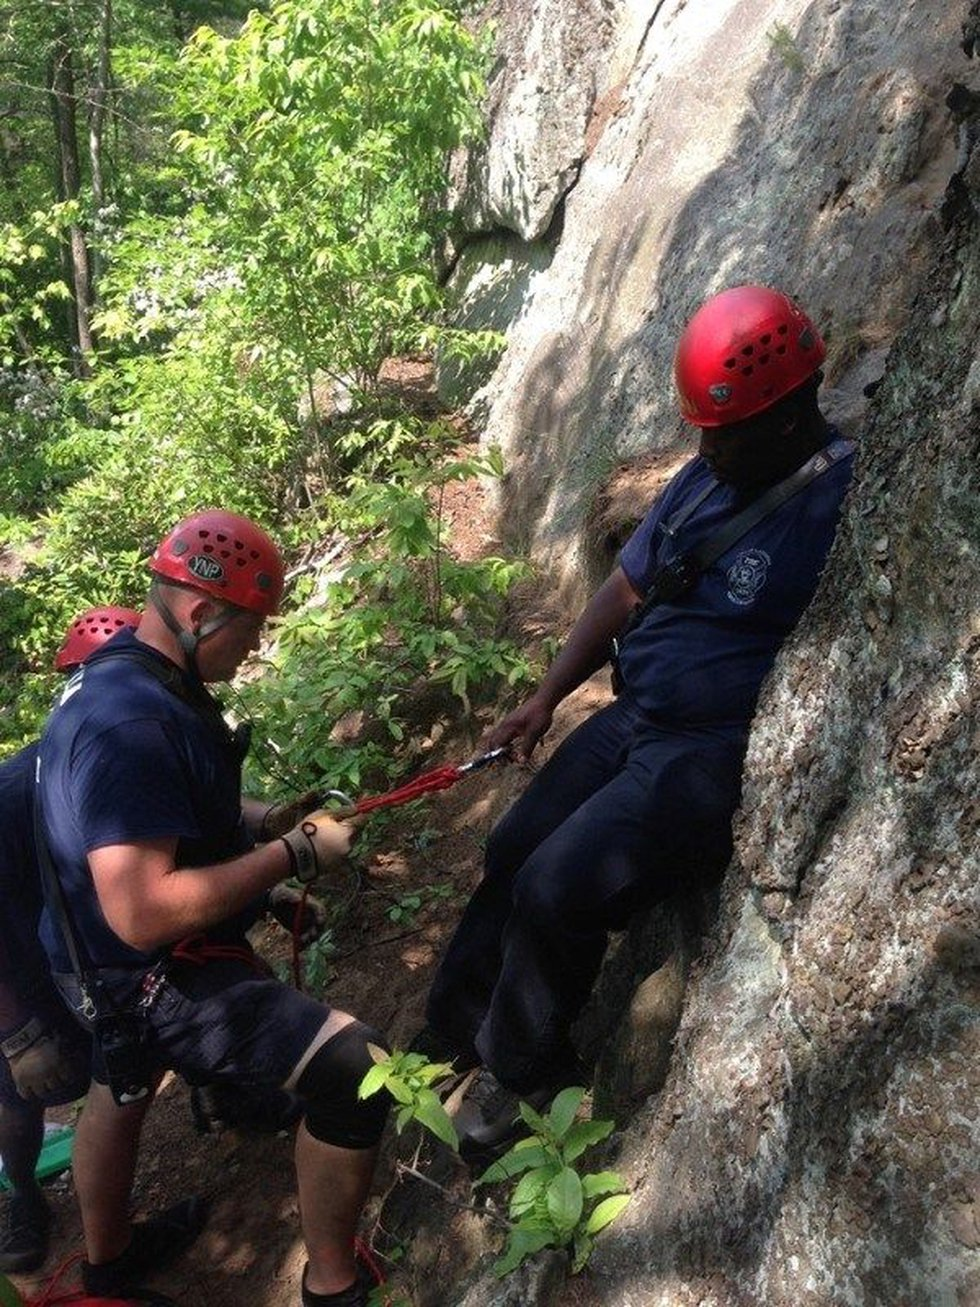 Rescue crews ascending to reach the victim (Photos courtesy of The Gastonia Fire Department)